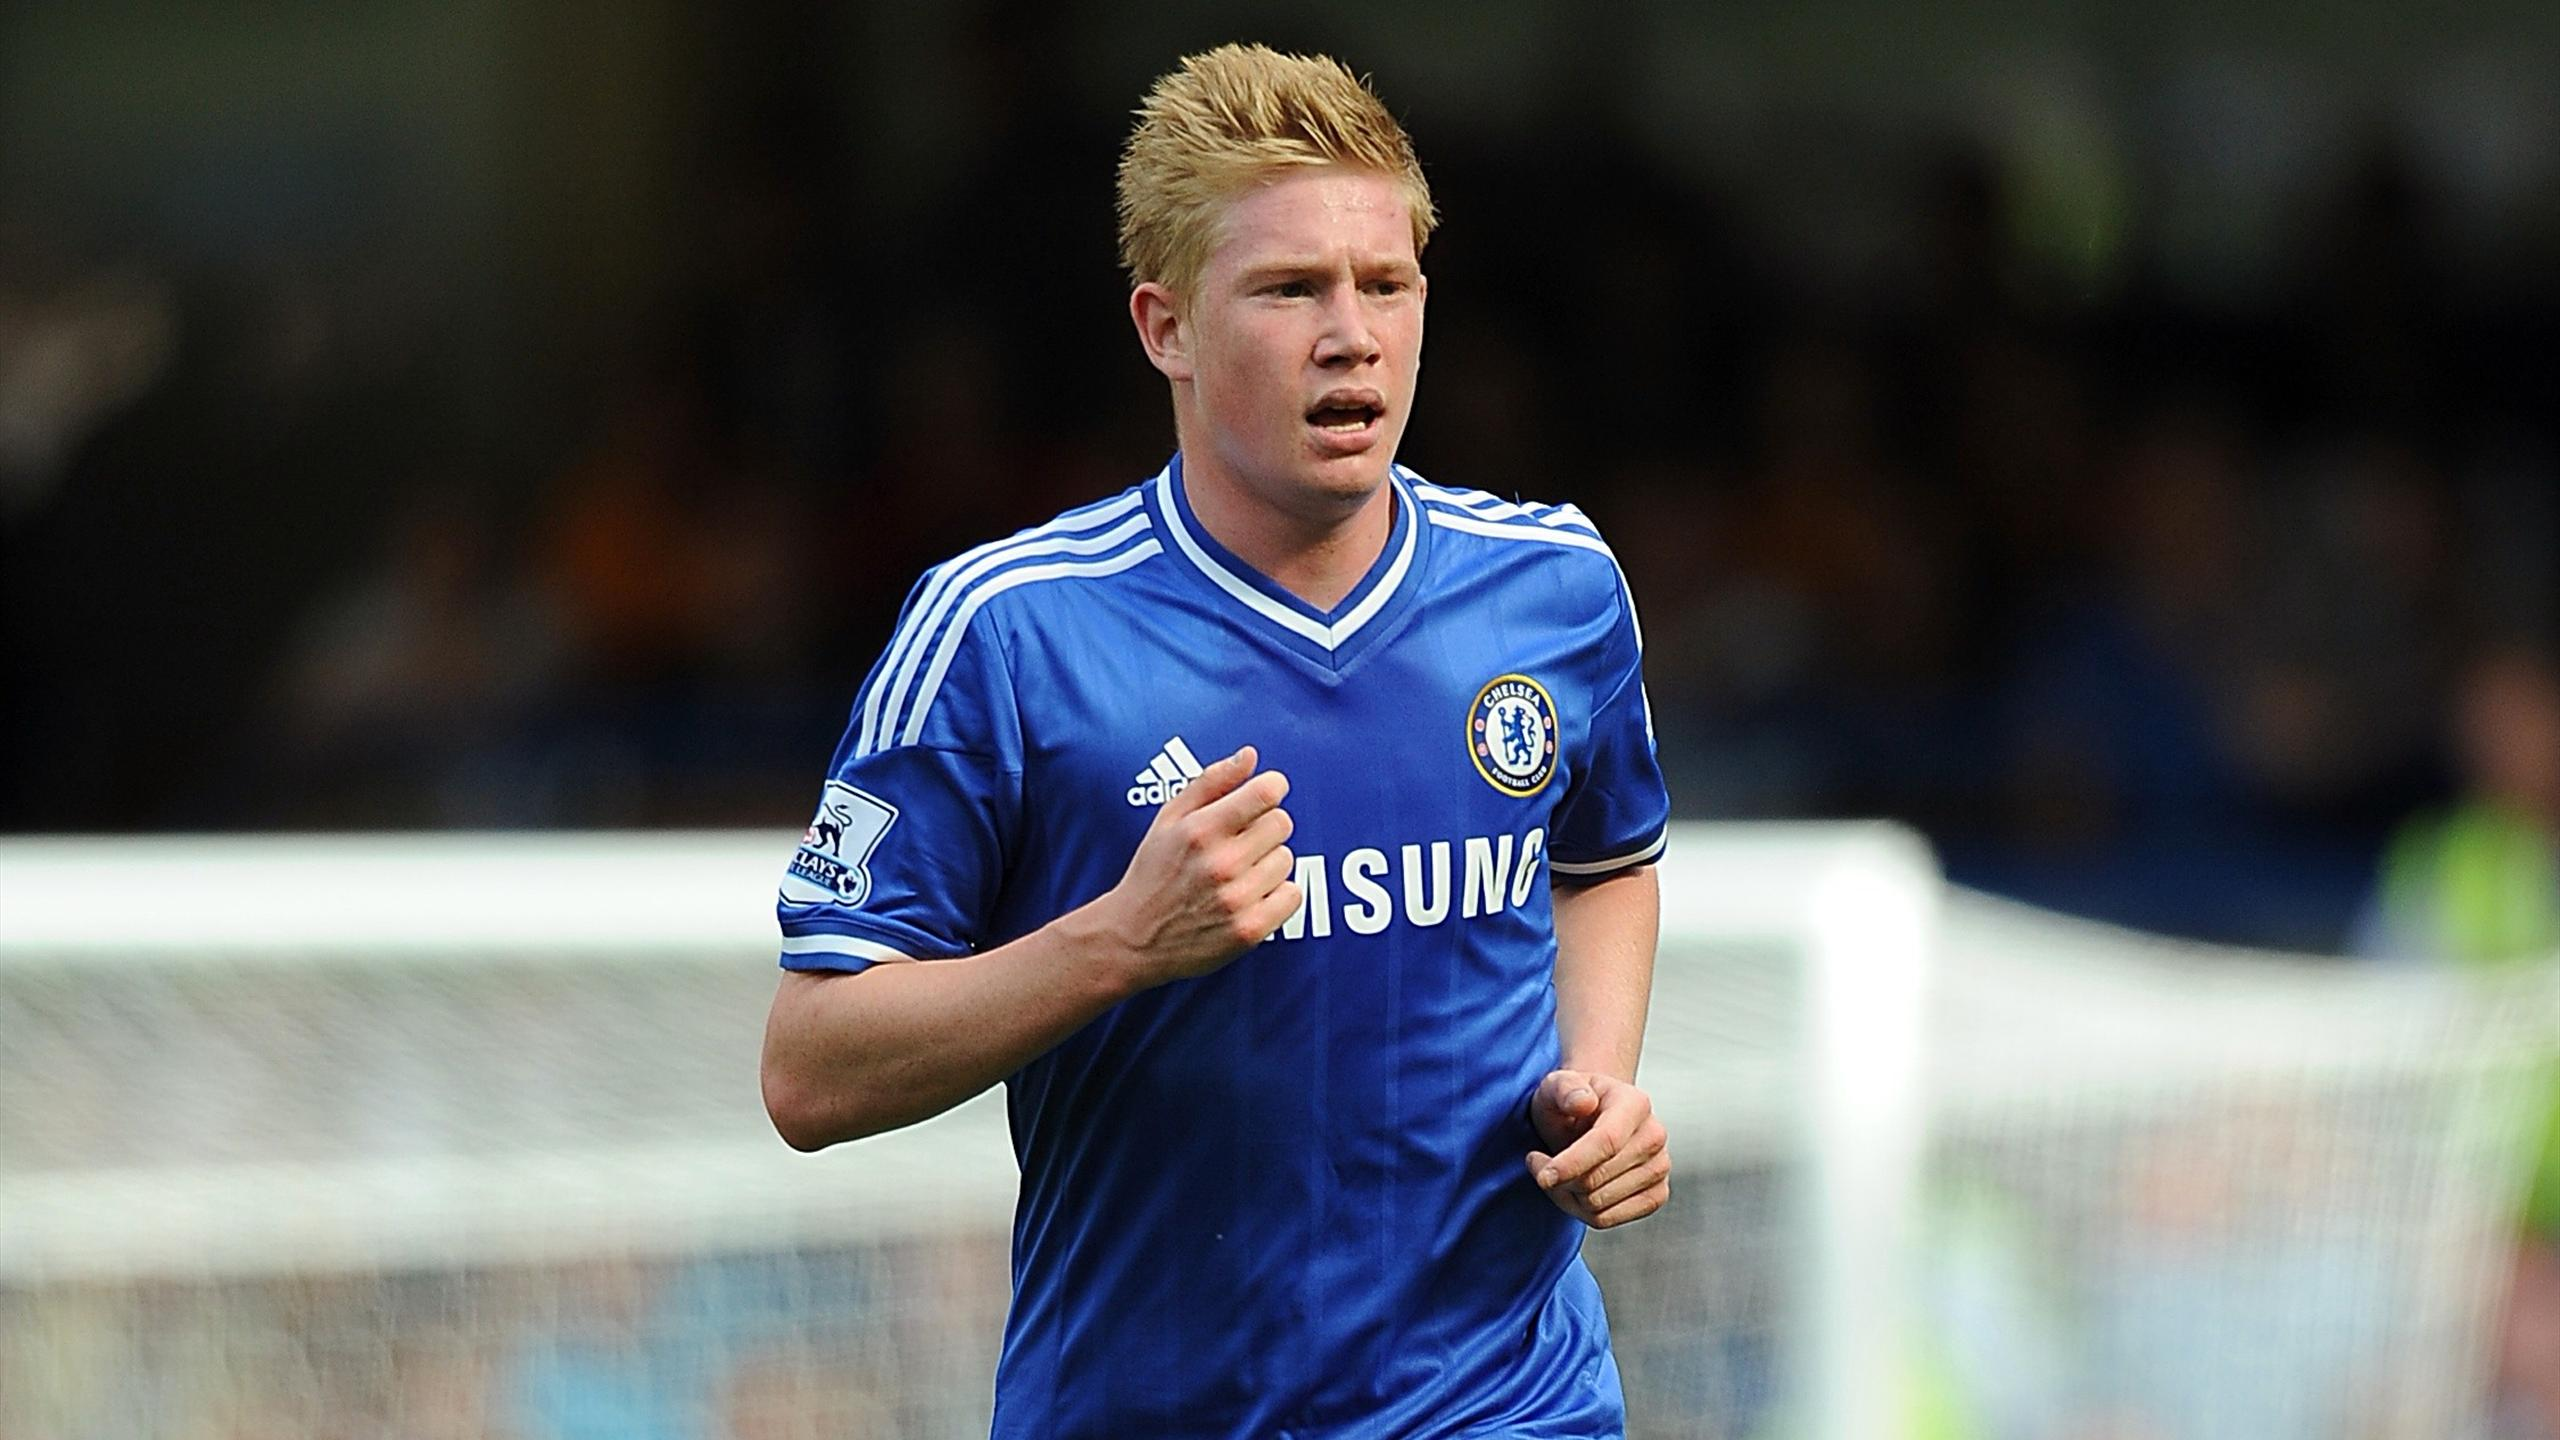 Midfielder Kevin De Bruyne while at Chelsea